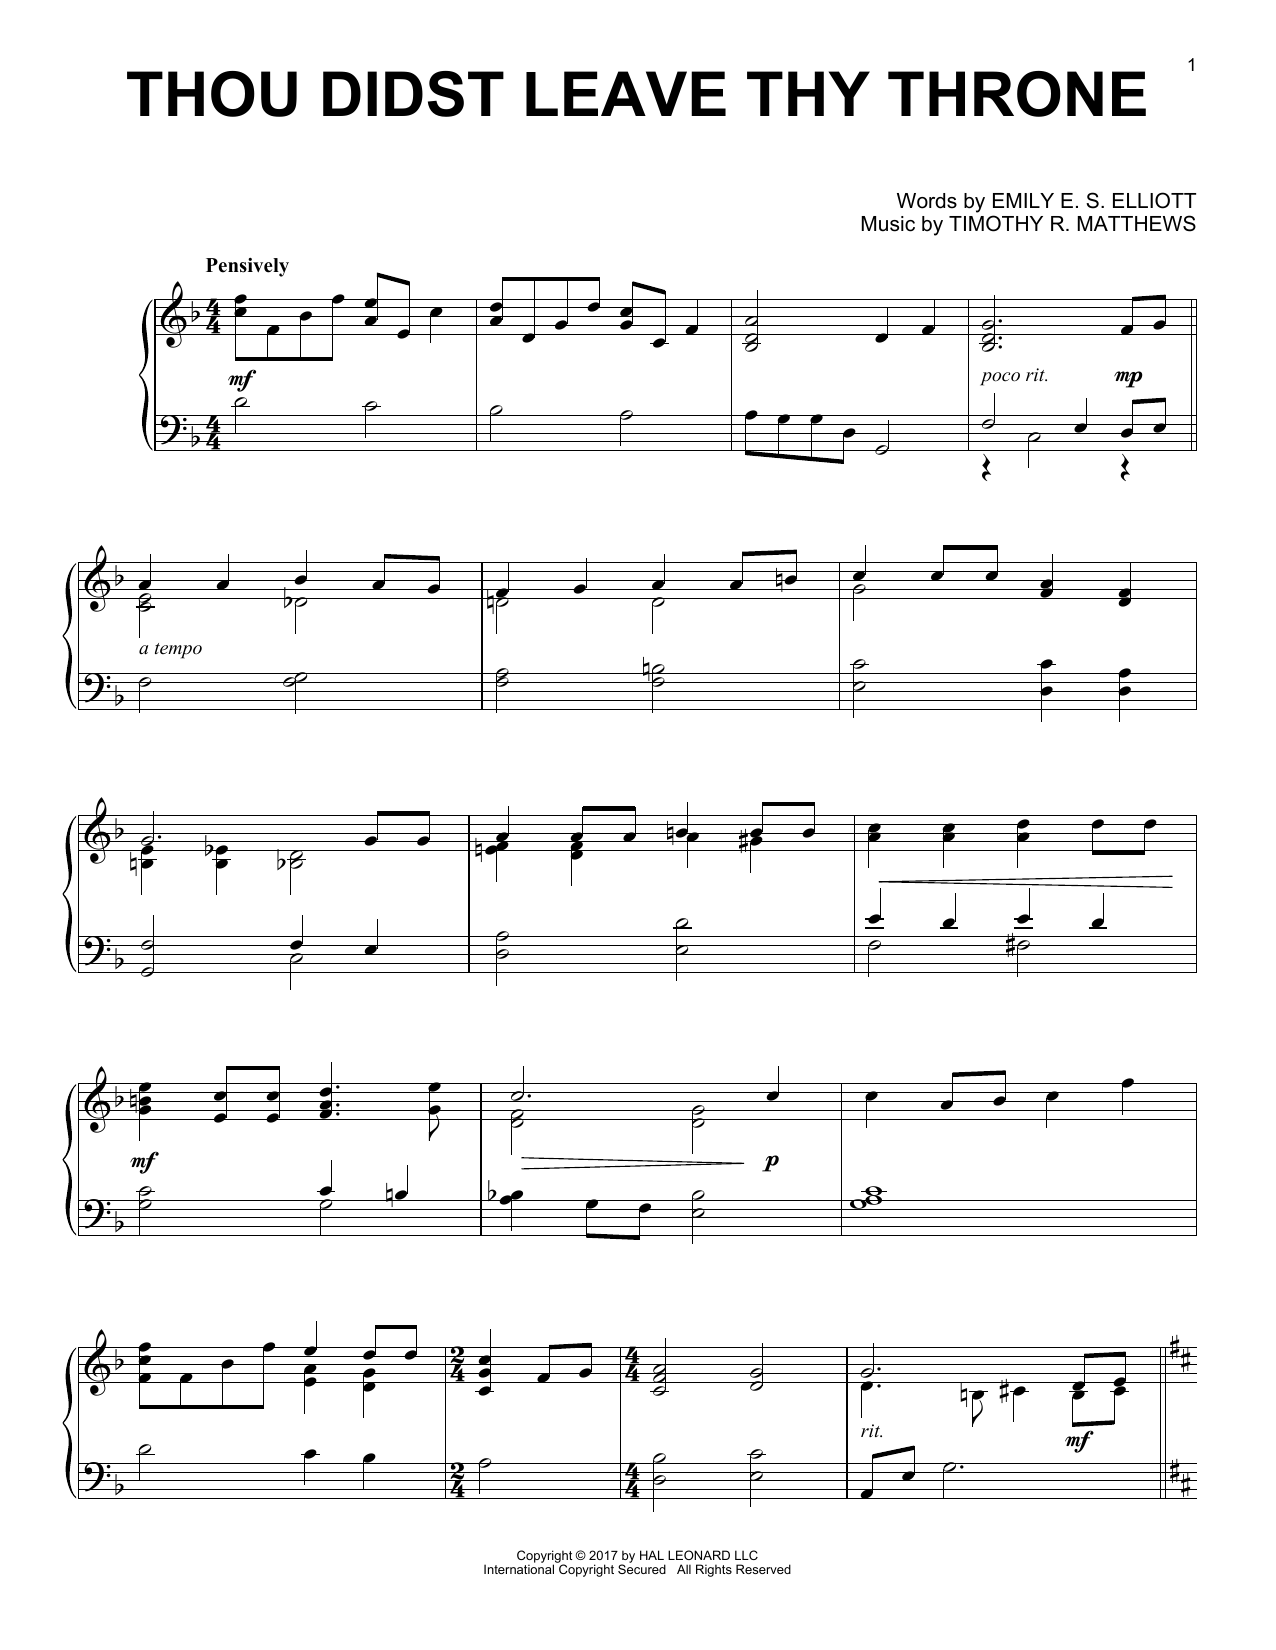 Timothy R. Matthews Thou Didst Leave Thy Throne sheet music notes and chords. Download Printable PDF.